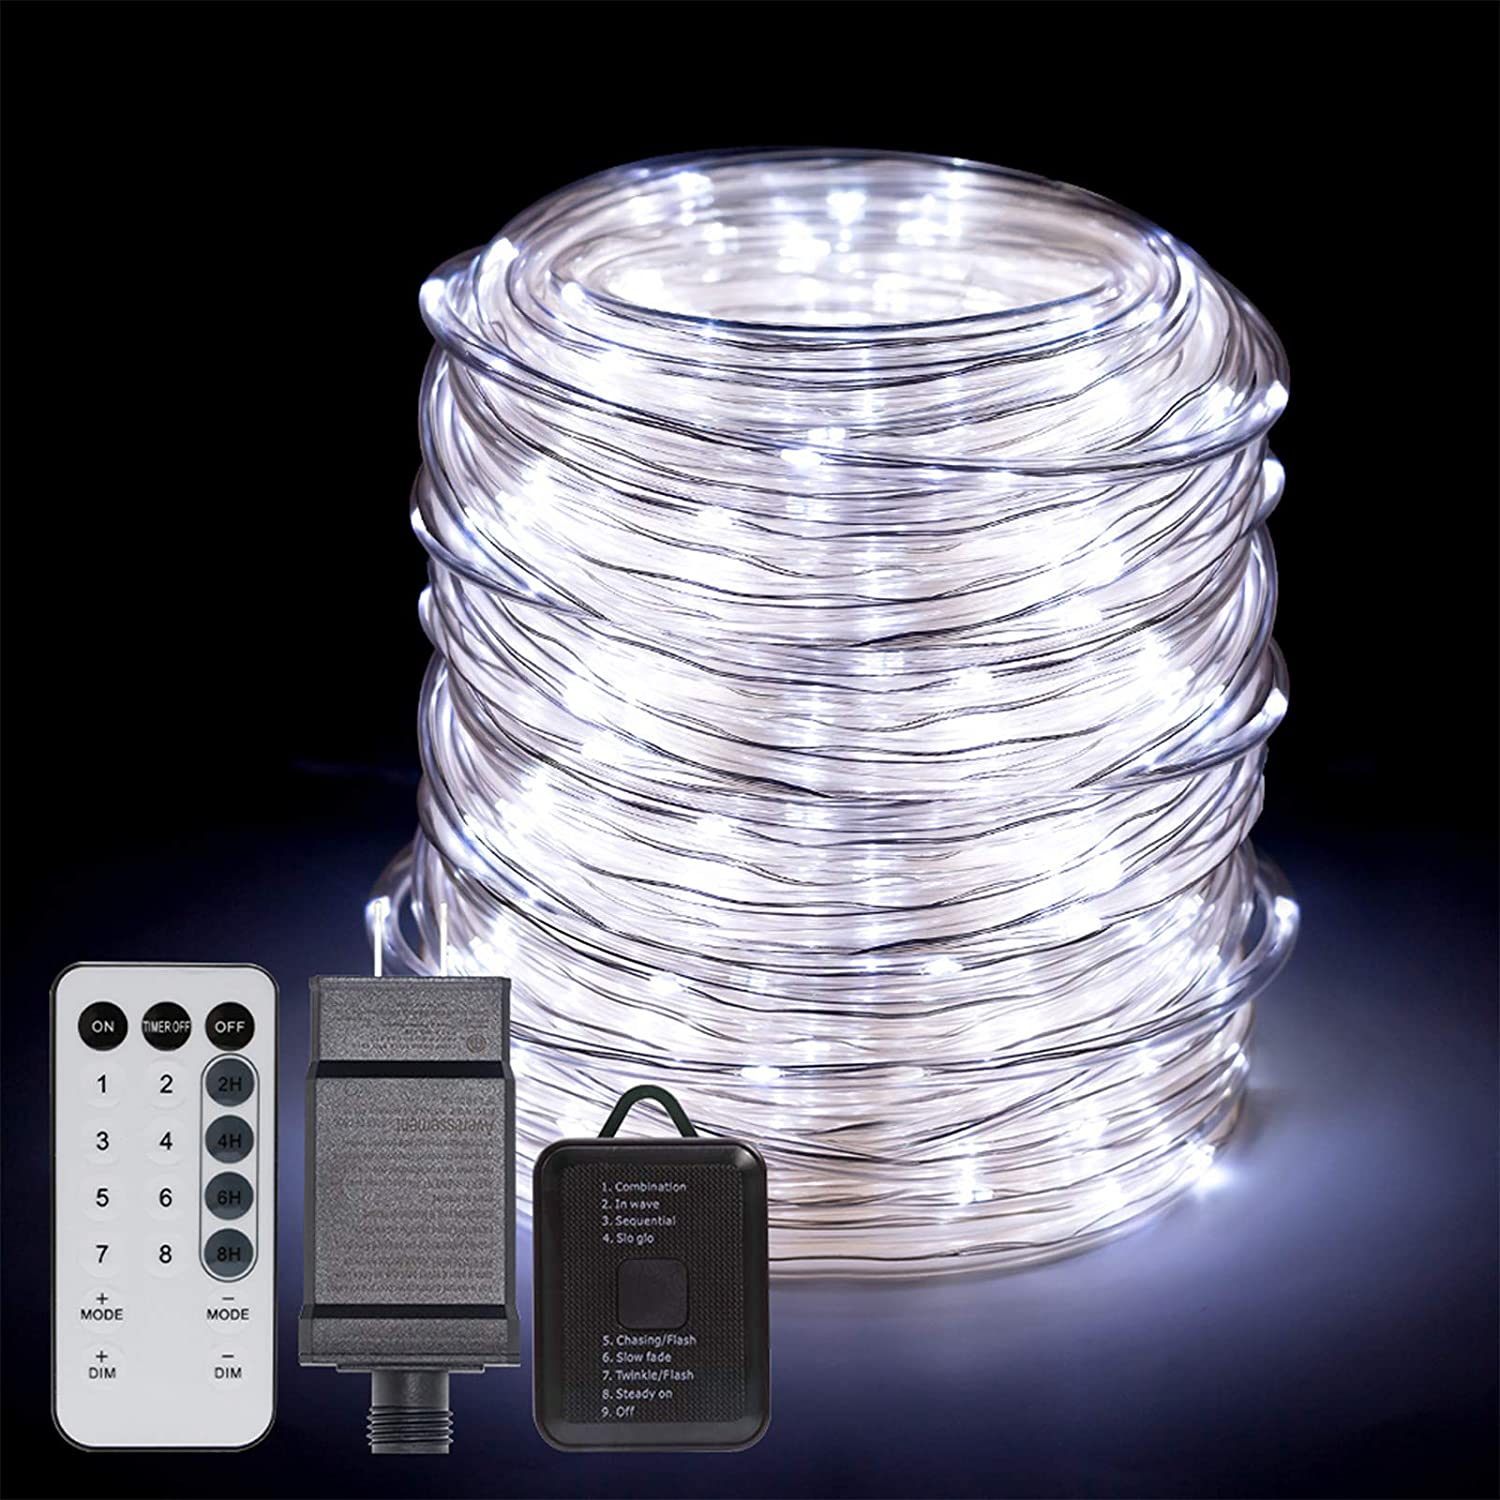 ANJAYLIA 66ft 200 LED Rope Lights Outdoor, Waterproof String Lights Plug in with Remote Control for Christmas Porch Deck Garden Party, White